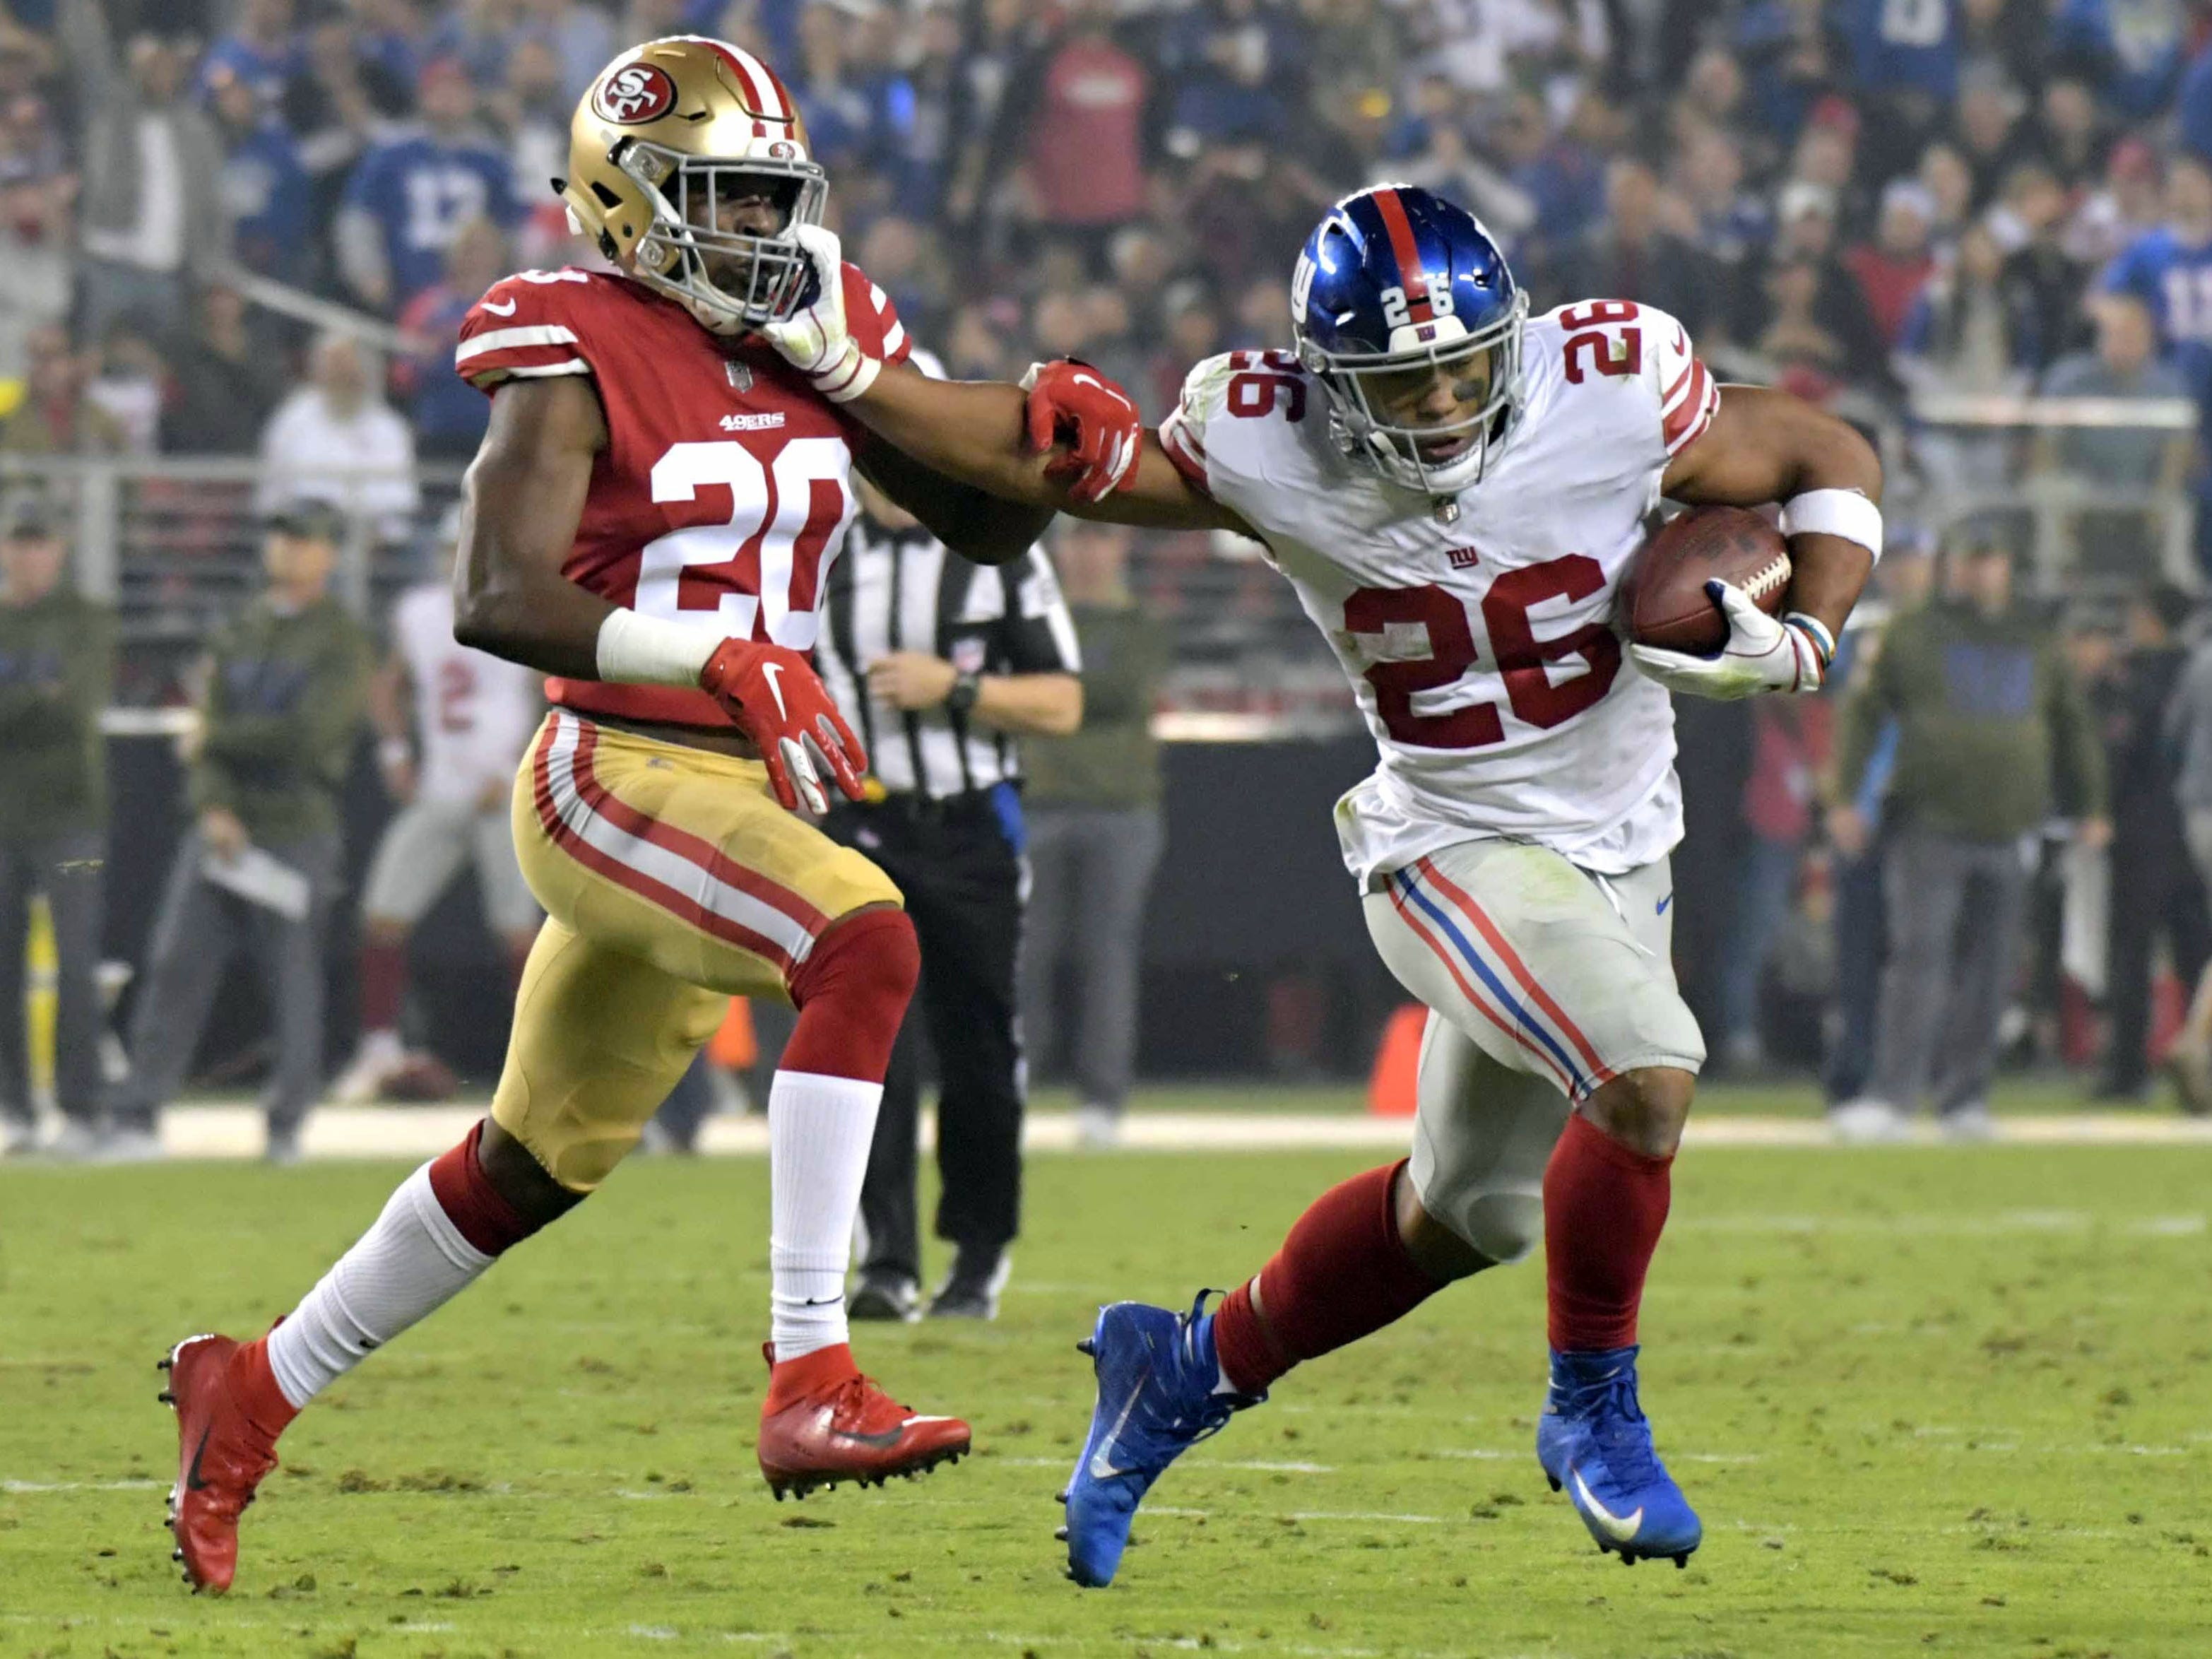 New York Giants running back Saquon Barkley is defended by San Francisco 49ers cornerback Jimmie Ward in the second quarterat Levi's Stadium.